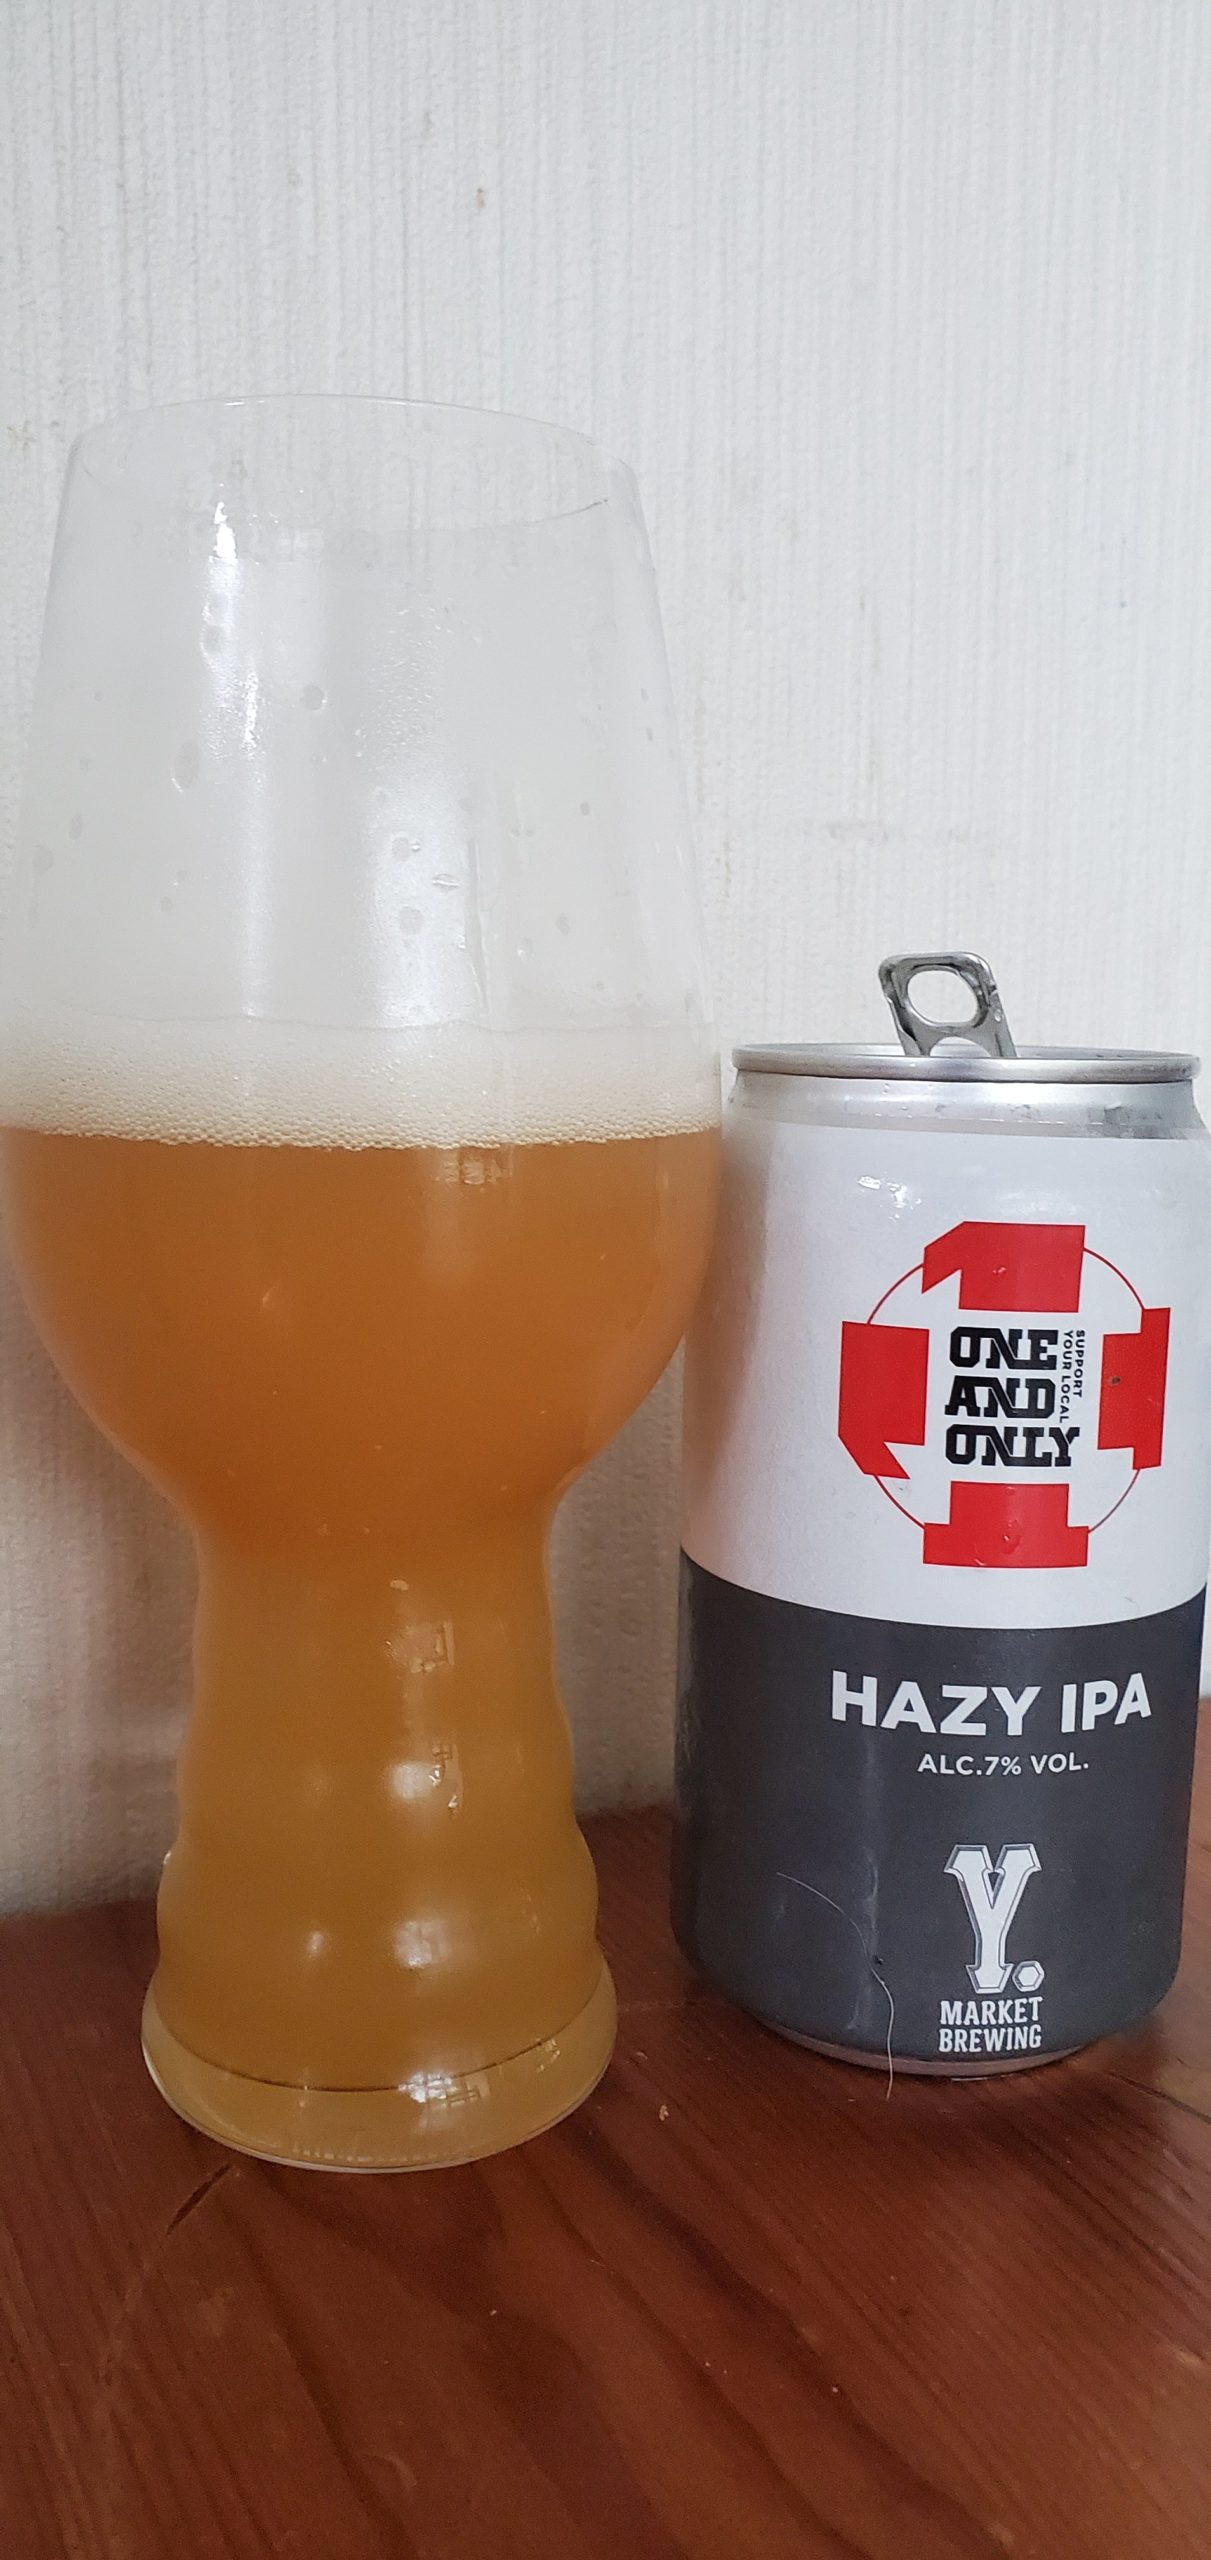 Y Market One and Only Hazy IPA・ワイマーケット ワンアンドオンリー ヘイジーIPA